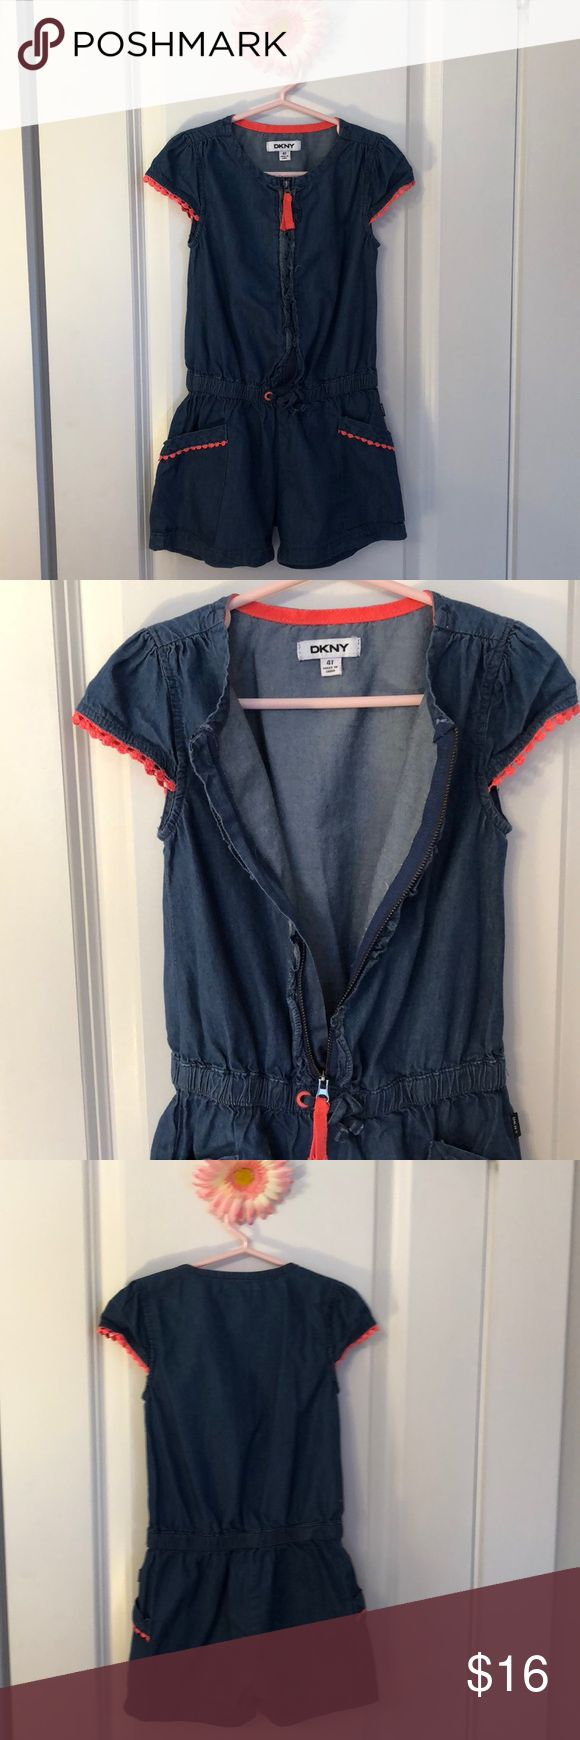 DKNY GIRLS DENIM ONE PIECE JUMPER 4T HALF ZIP Gorgeous 100% cotton half zip jump with full elastic waist. Hot pink lace details around cap sleeve arms and pockets. Would be great for school, spring, summer, or dressed up for a more formal occasion. Looks great with sneakers or sandals. Girls 4T. Dkny One Pieces Bodysuits